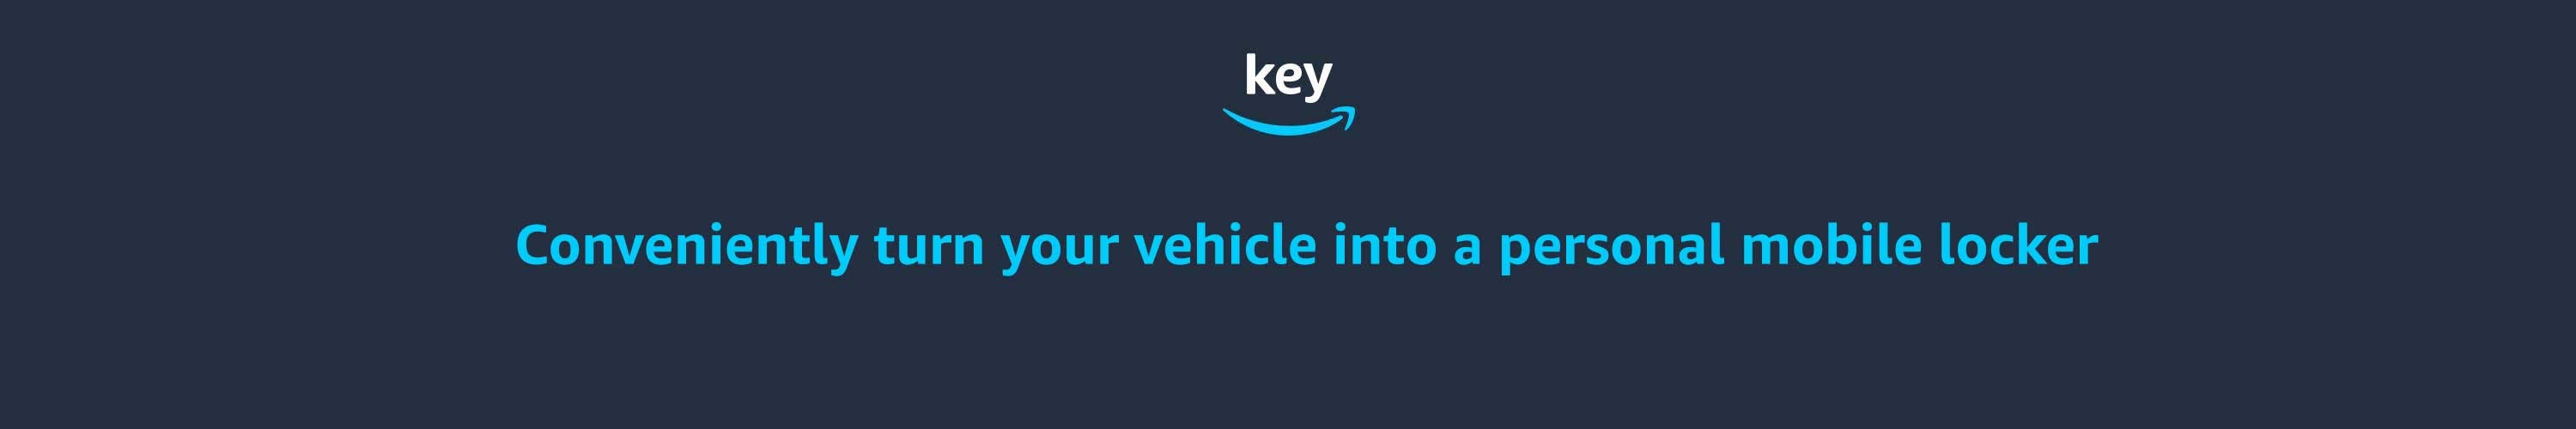 Key by Amazon. Conveniently turn your vehicle into a personal mobile locker.